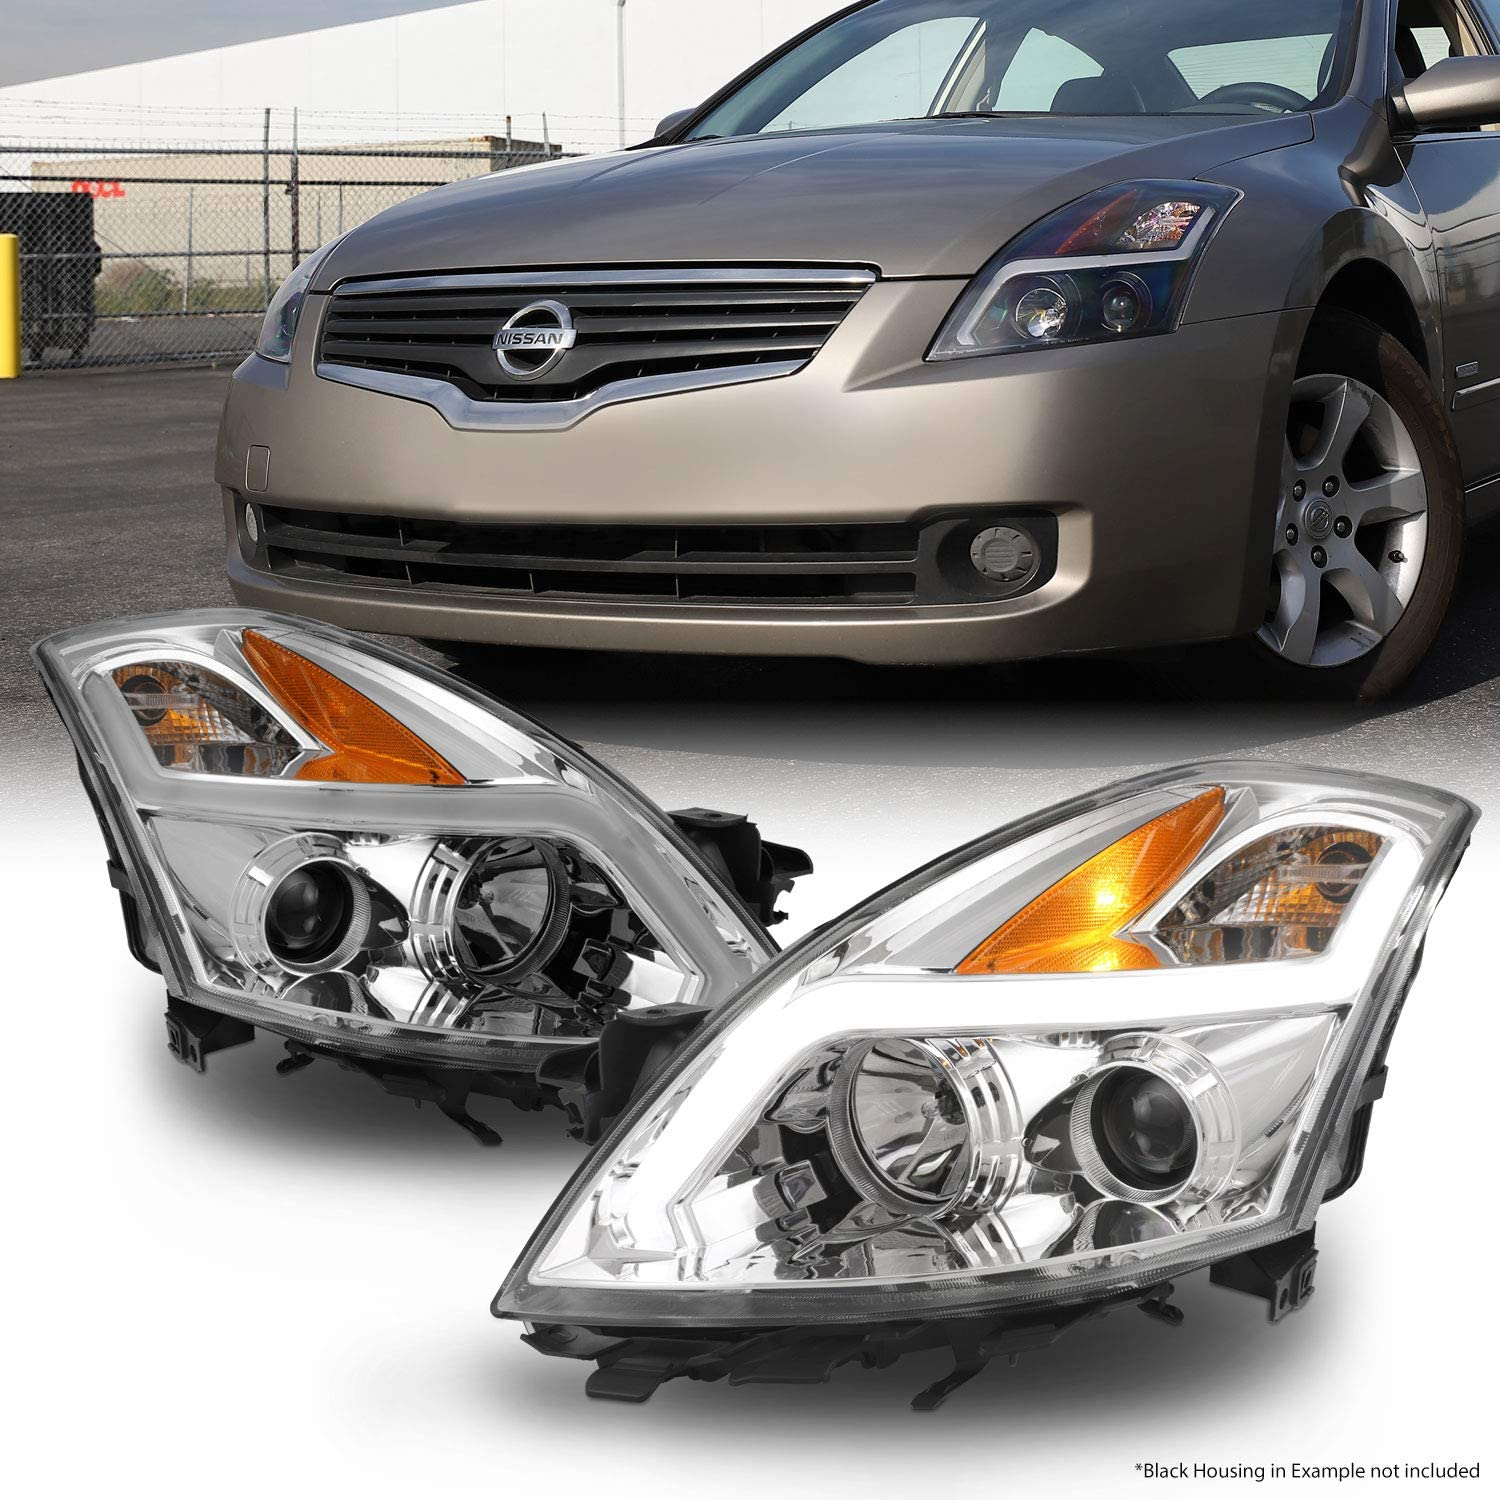 Driver and Passenger Side For 2007-2009 Nissan Altima 4-Door Sedan Headlights Replacement Black Housing with Amber Reflector Clear Lens One-Year Warranty